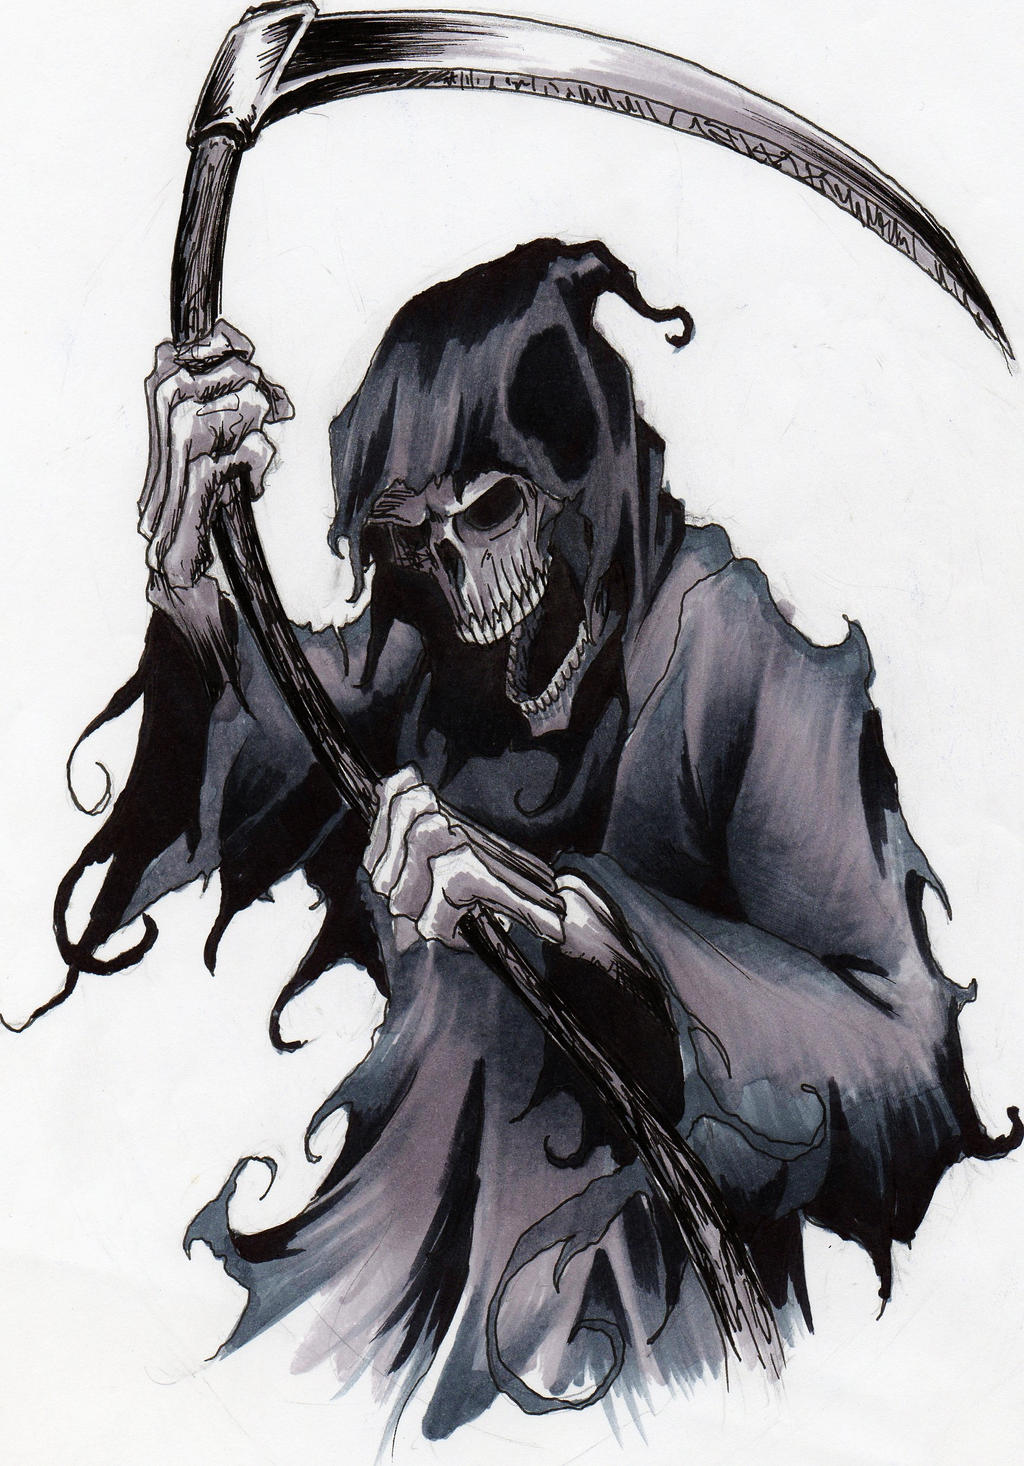 reaper by yacobucci on DeviantArt